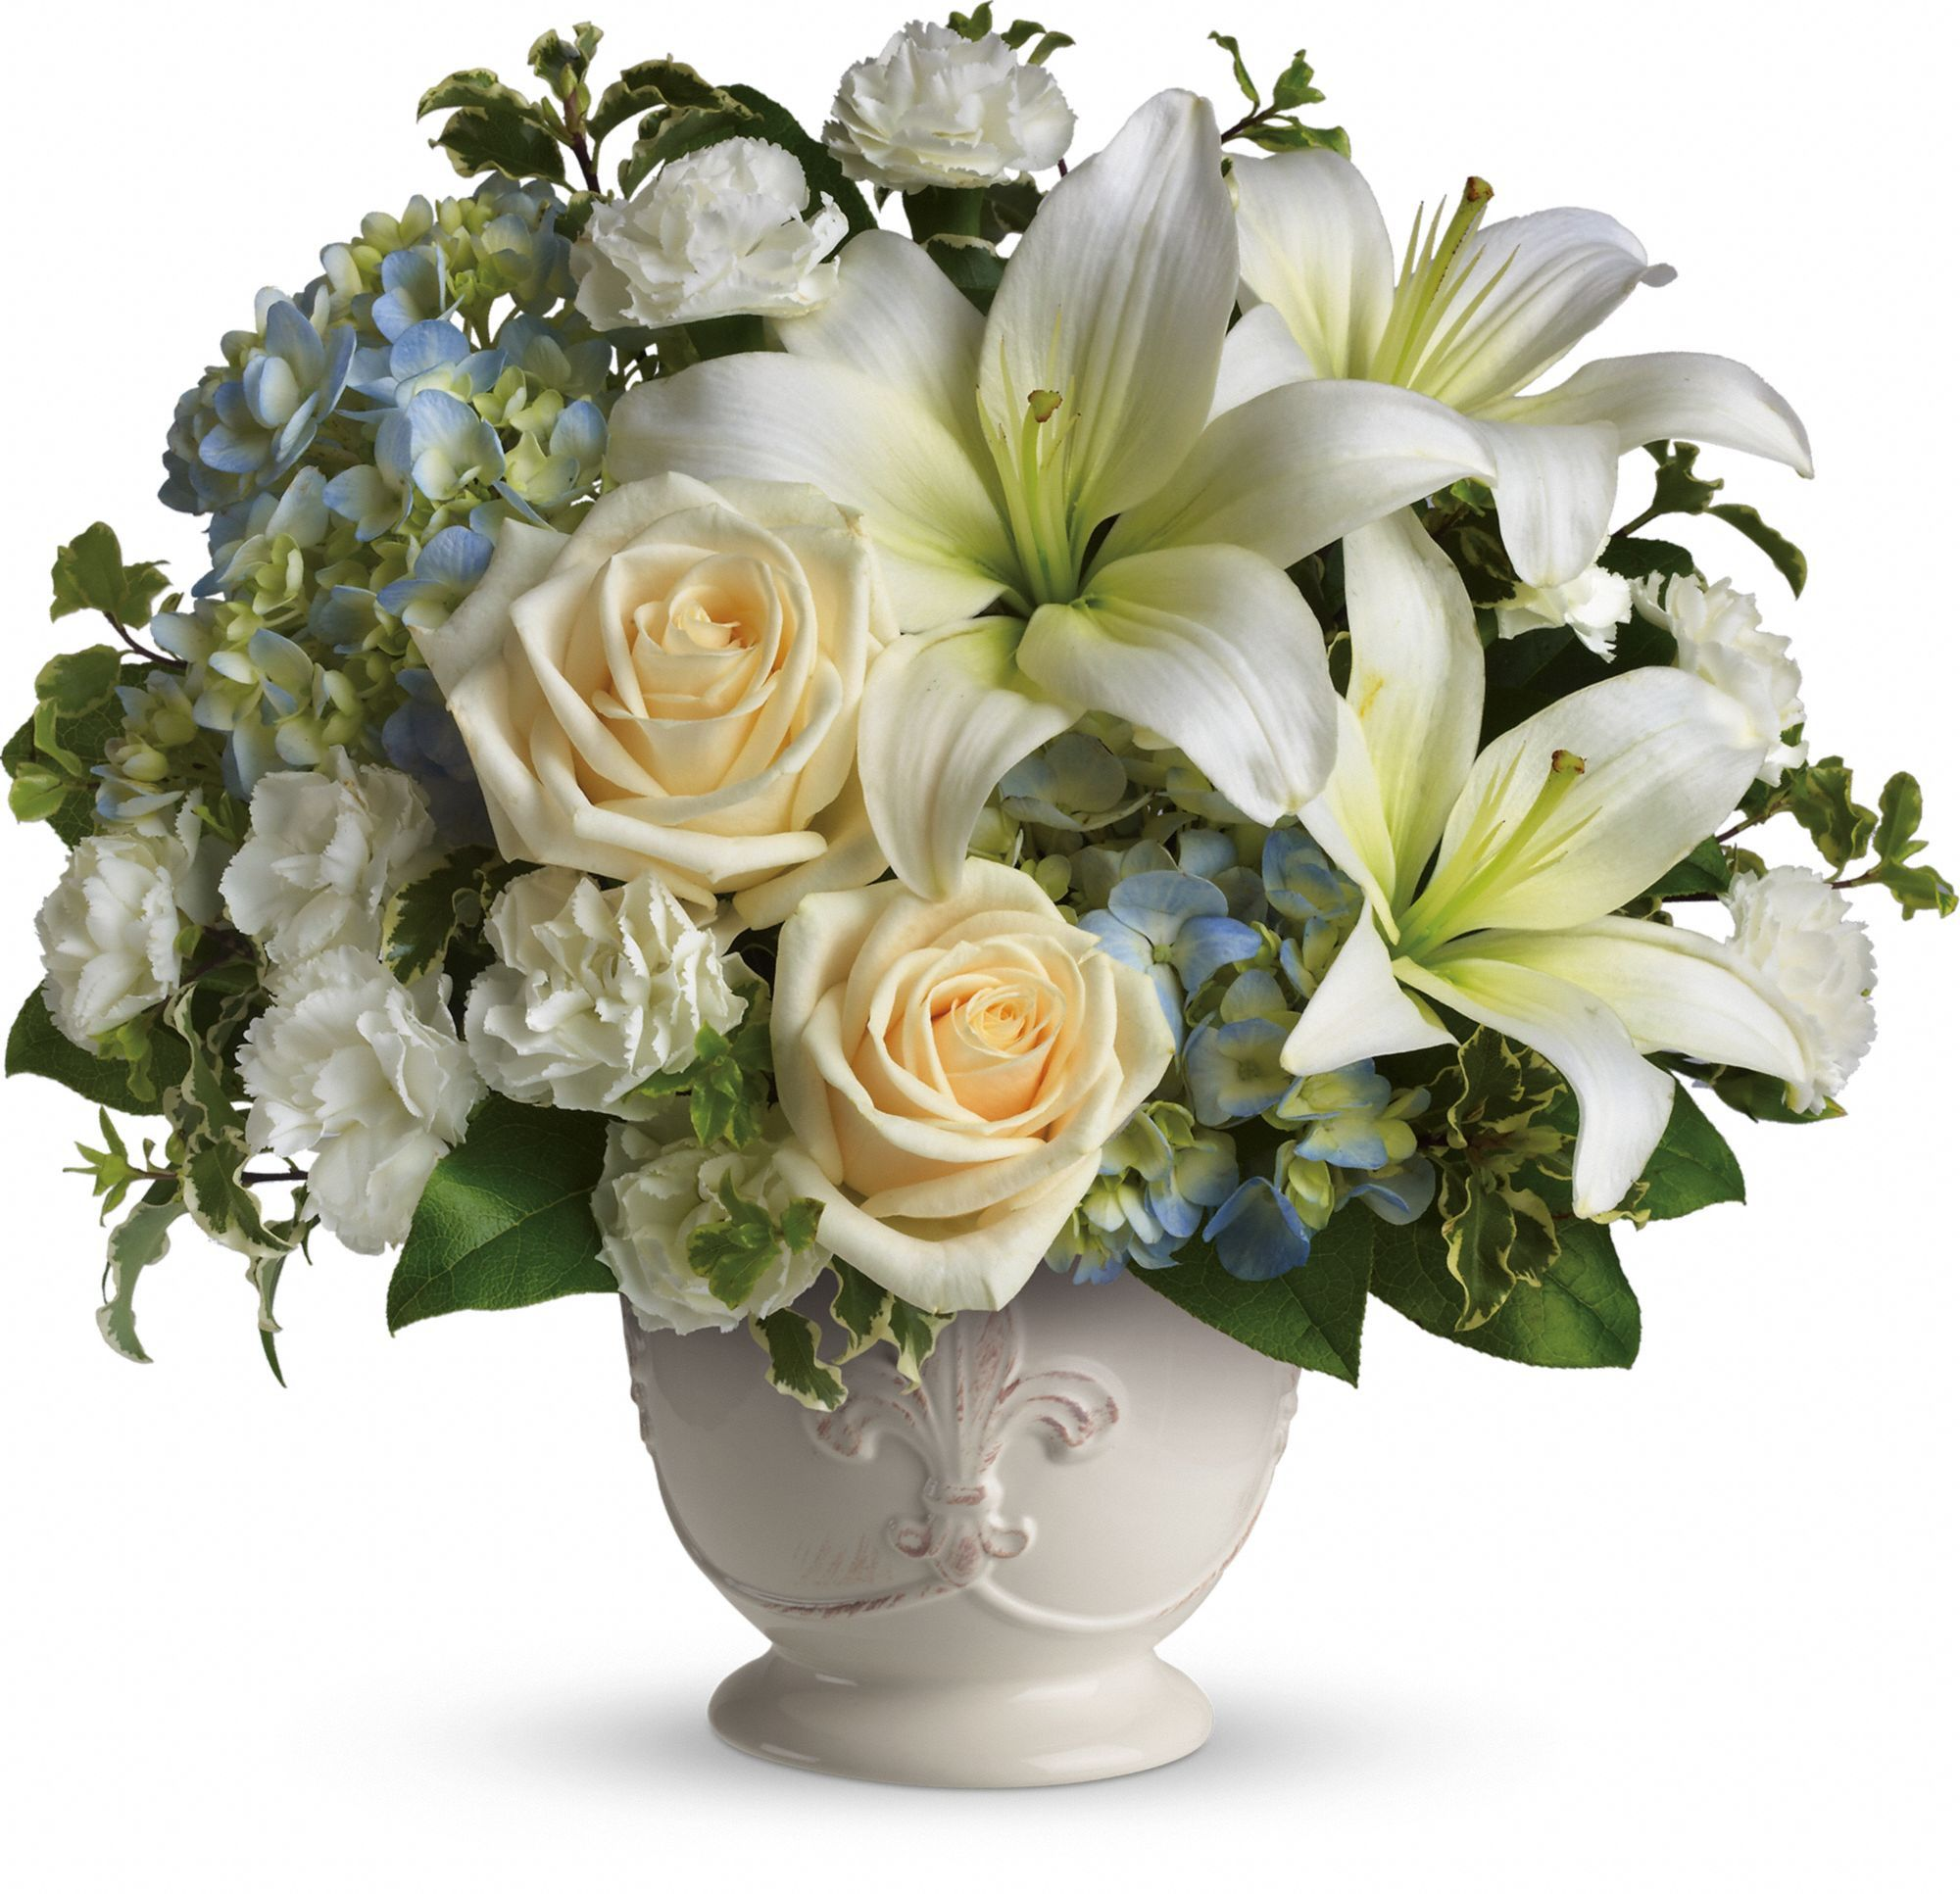 Beautiful dreams by teleflora loss pinterest sympathy flowers a beautiful bouquet of blue and white sympathy flowers blue hydrangeas crme roses white miniature carnations fragrant white asiatic lilies and green izmirmasajfo